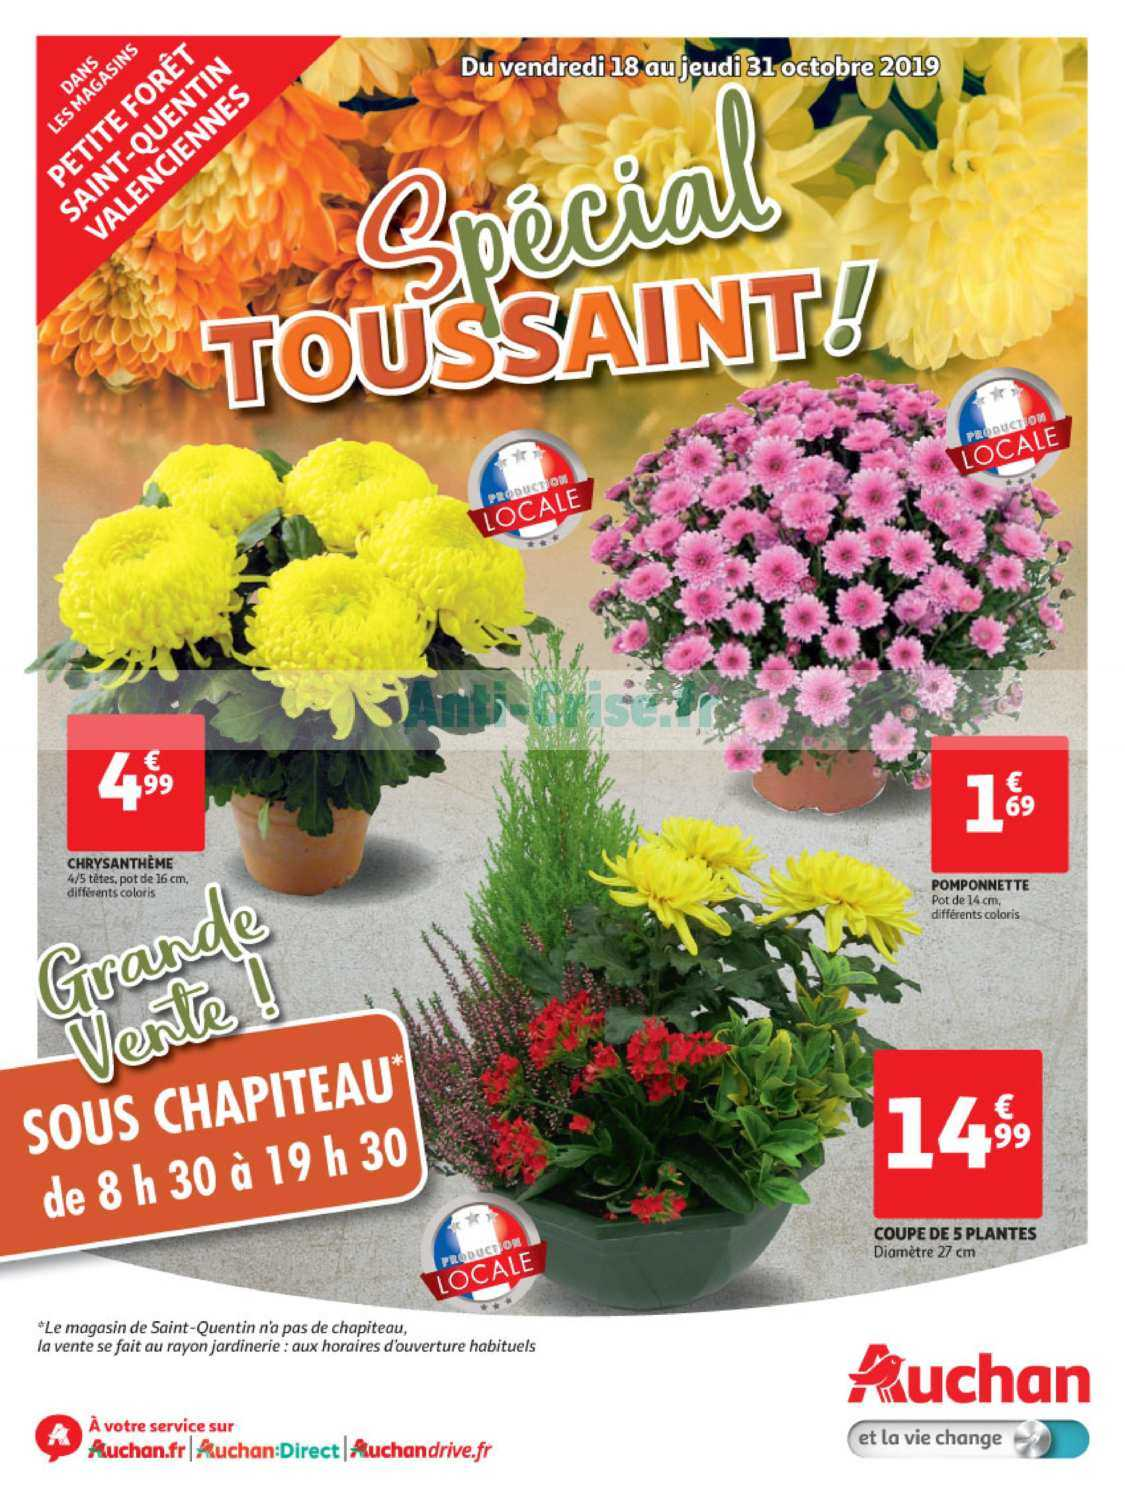 https://media.anti-crise.fr/2019/10/octobre2019auchan1810201931102019S0C0nord-Toussaint-1-225x300.jpg